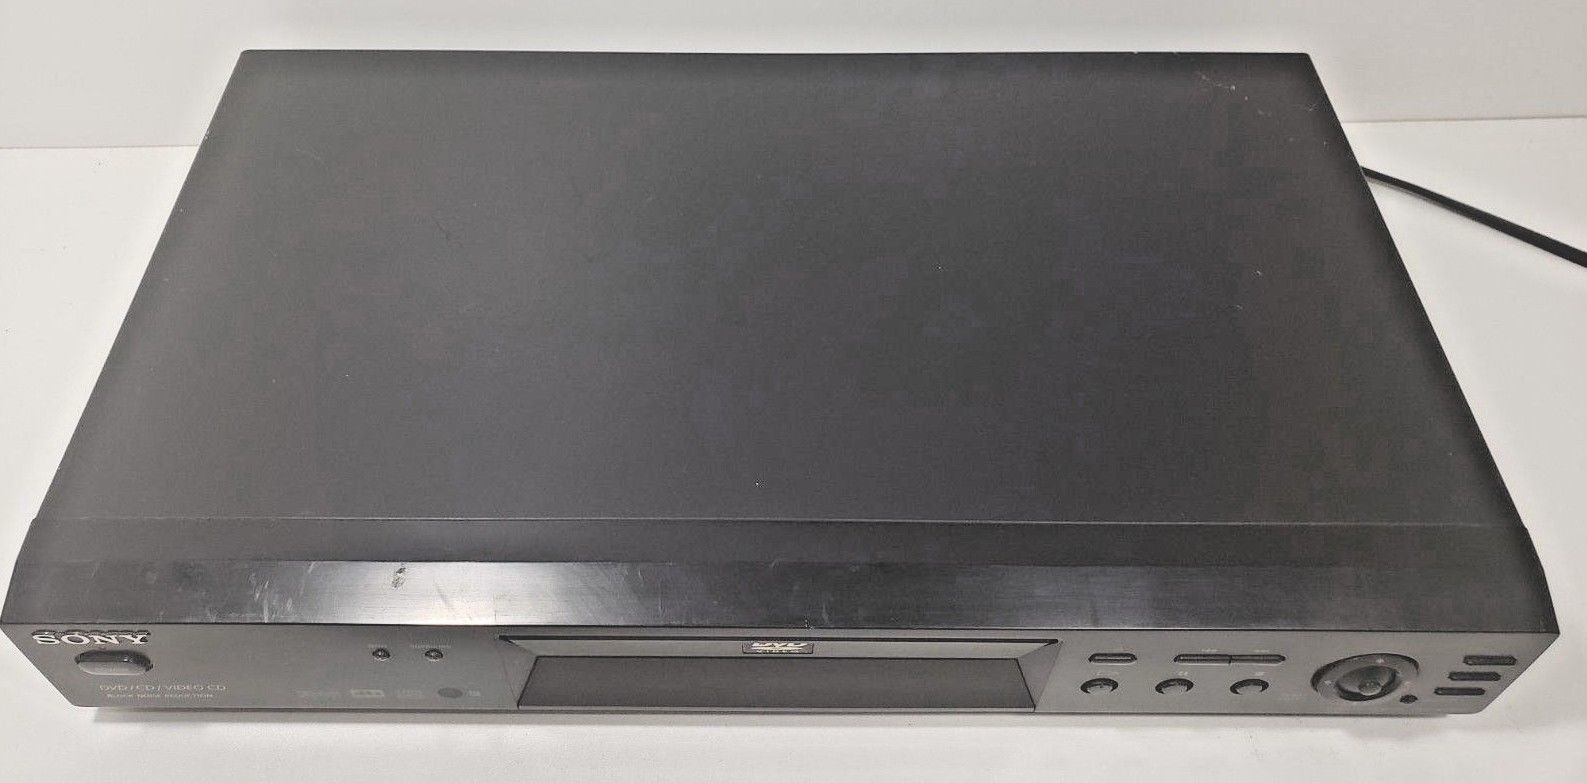 Sony DVP-NS300 CD/DVD/Video CD Player.. Tested with Remote image 5